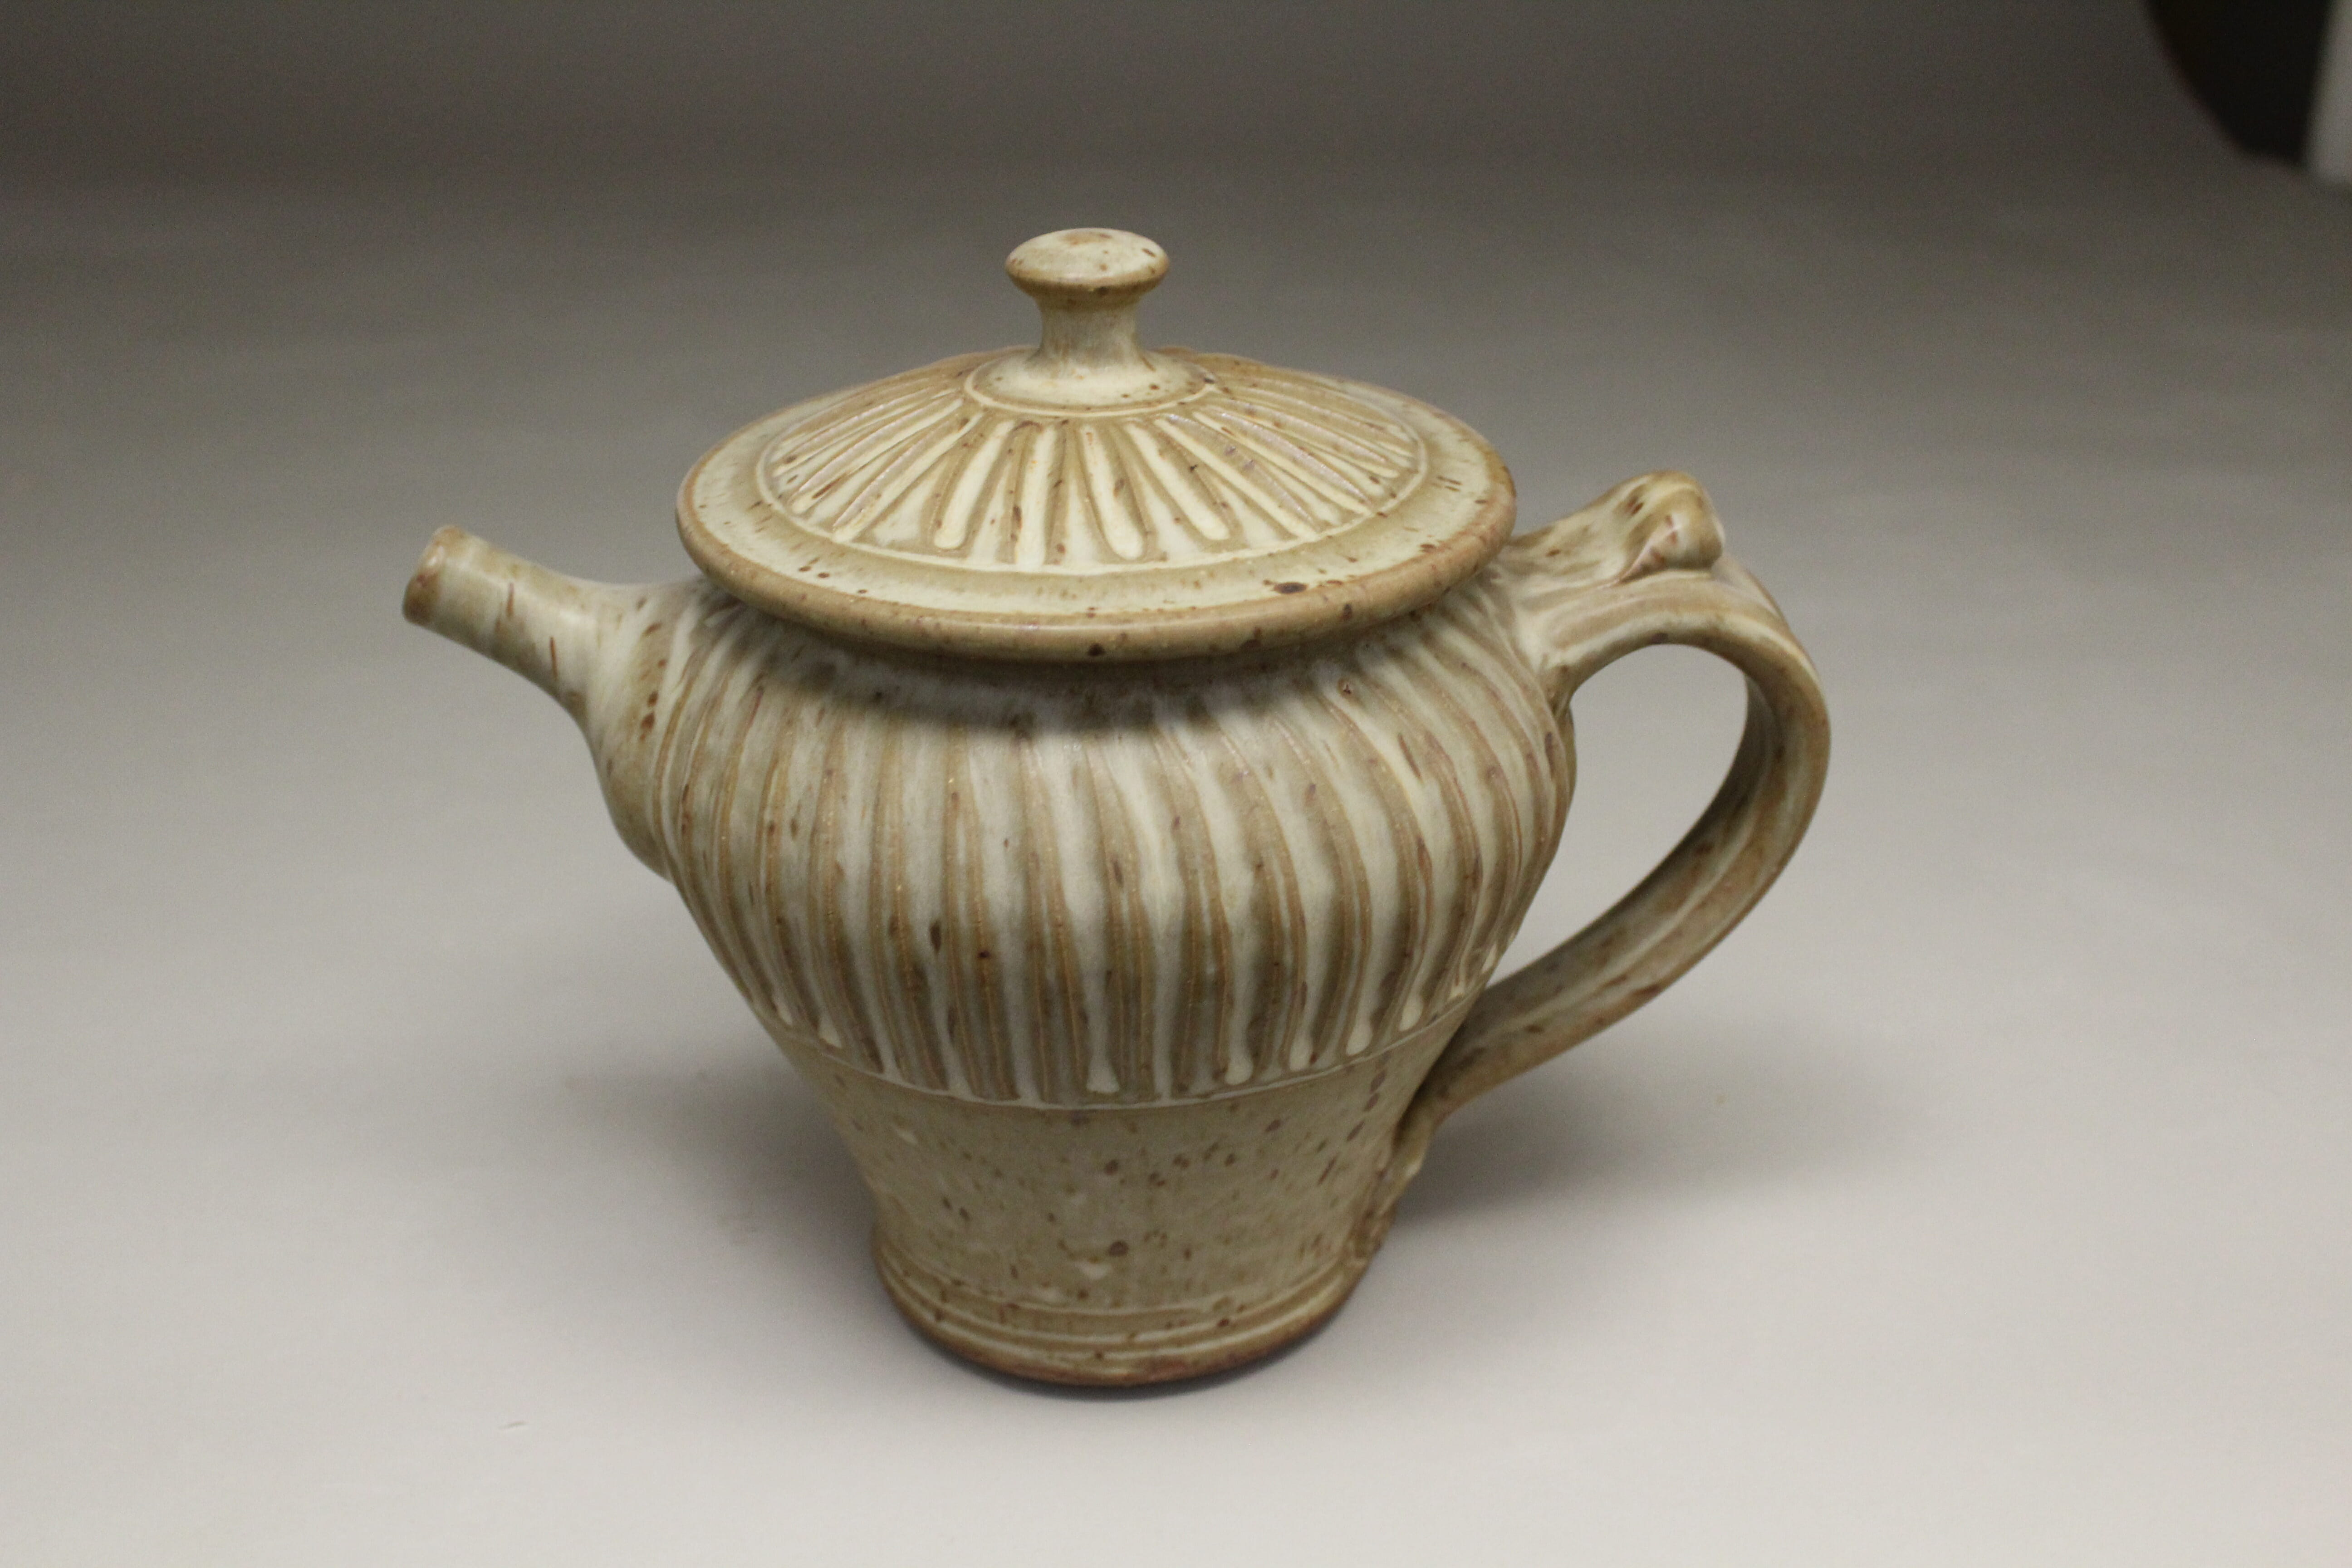 Spouted Teapot with Lid and Handle Fluted Design in Spodumene Glaze